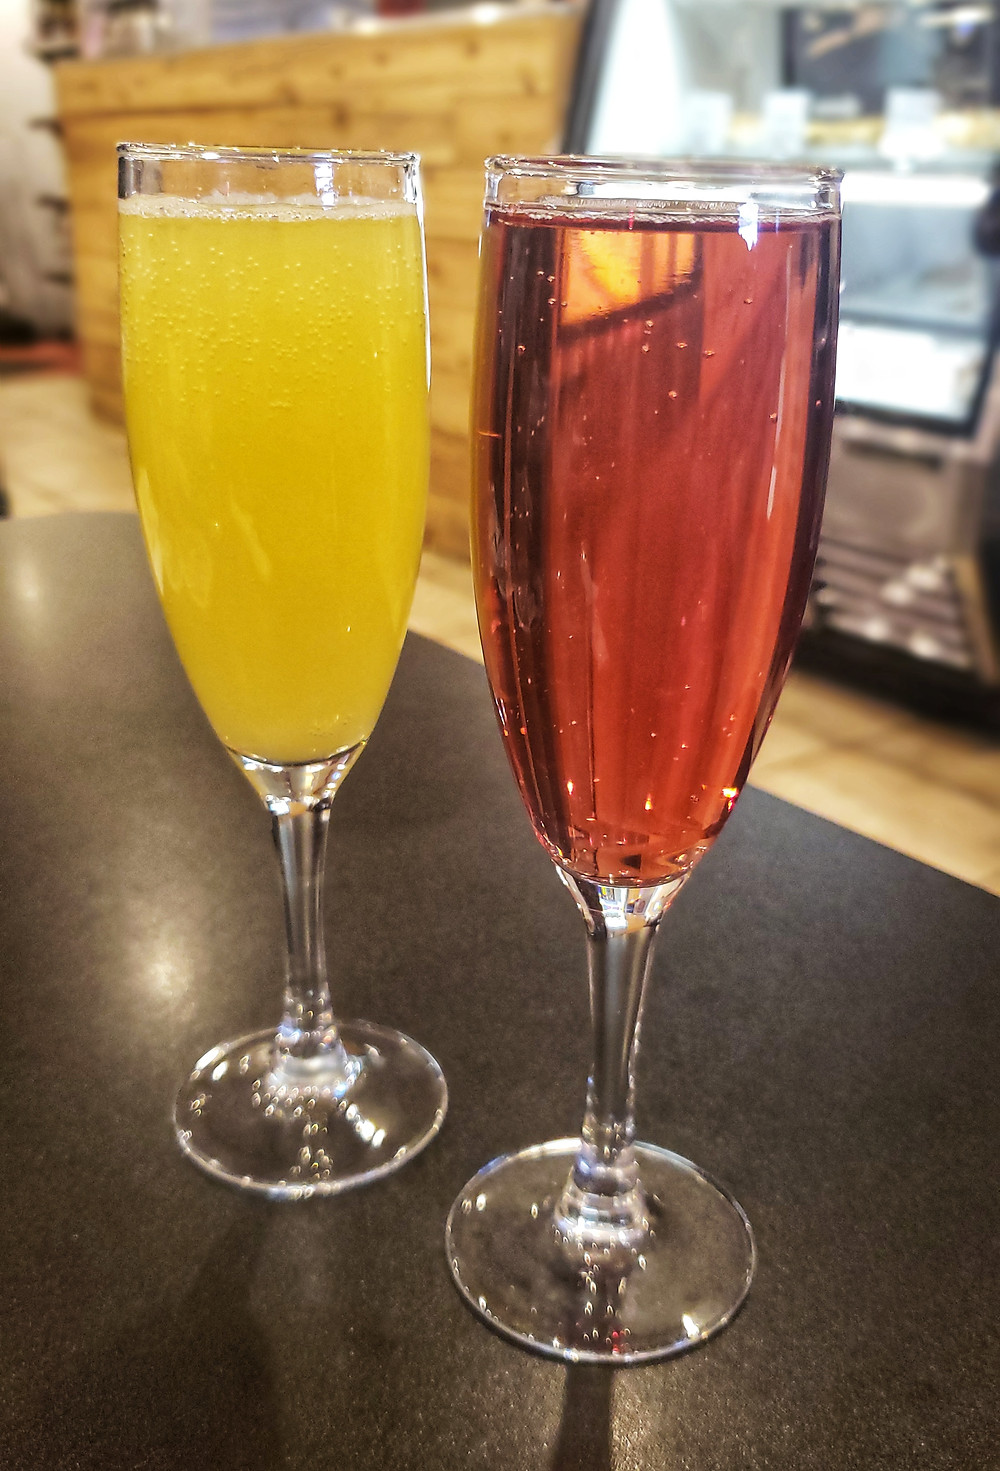 Tasty mimosas! They offer a variety of juices.